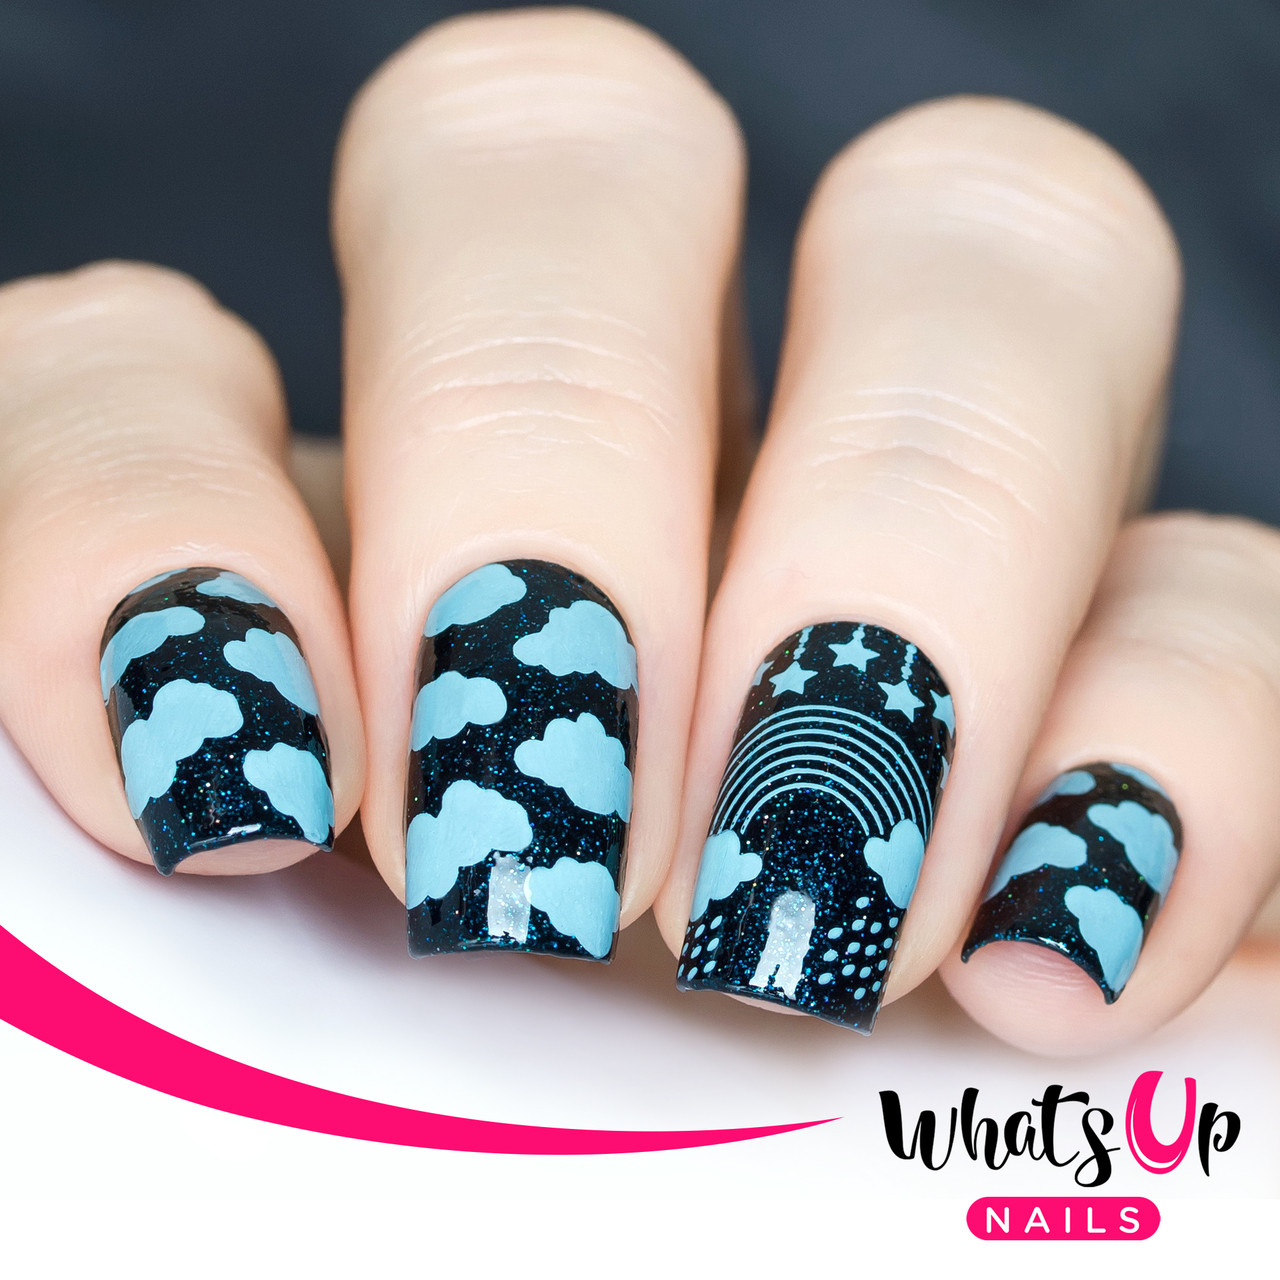 Whats Up Nails B014, Magical Playground nail stamping plate.  Available at www.lanternandwren.com.